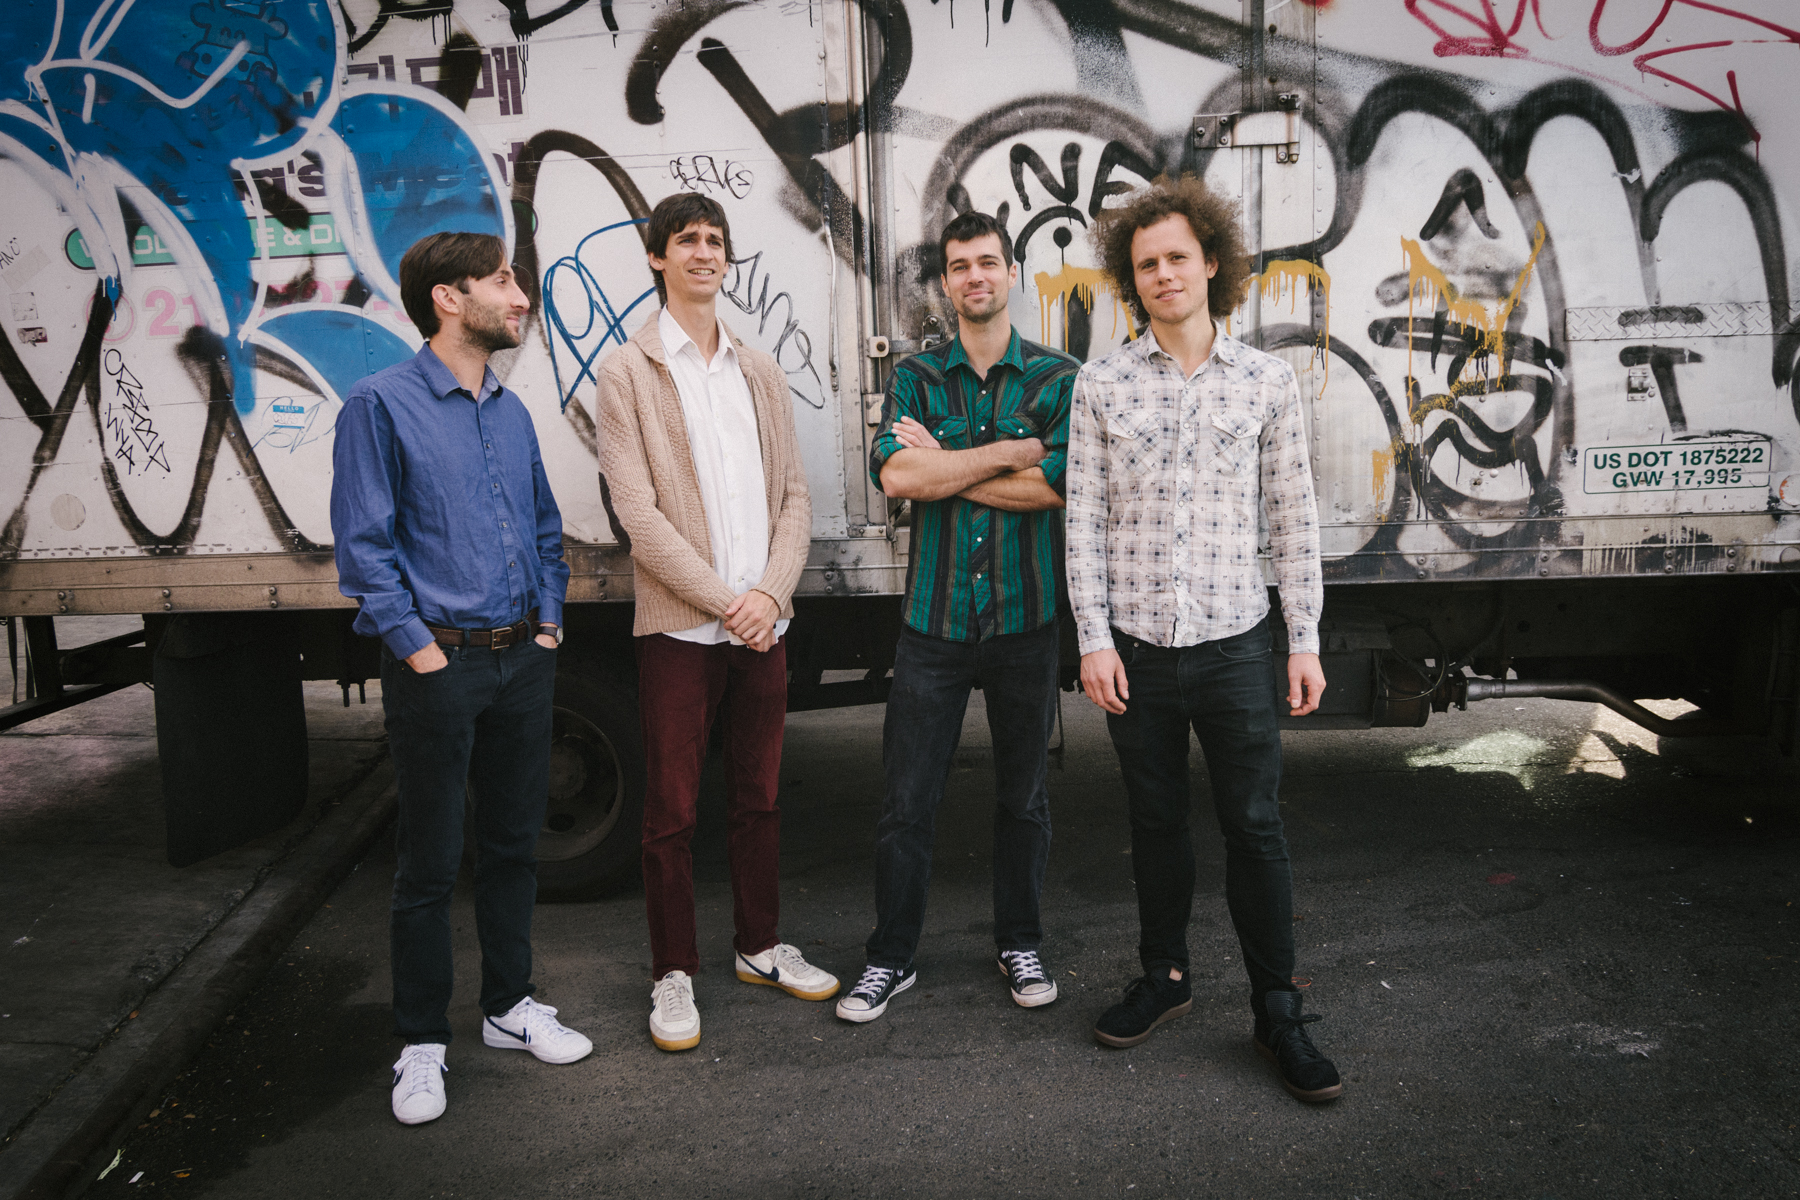 From left to right:Bryan Reeder (piano),Will Clark (drums),Calvin Crosby (bass), Brian Hawthorne (guitar & vocals)